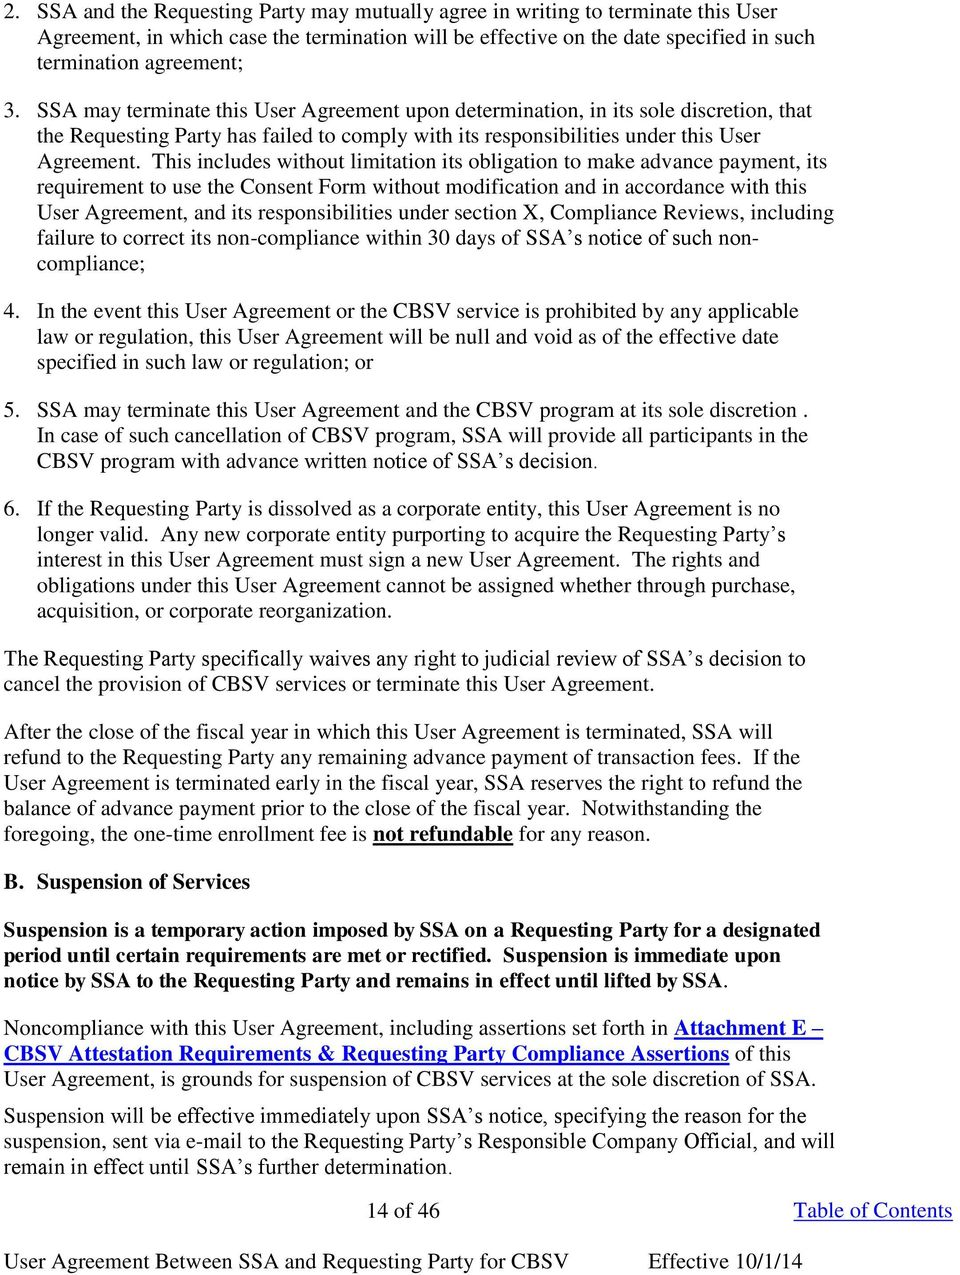 User Agreement Between The Social Security Administration Ssa And